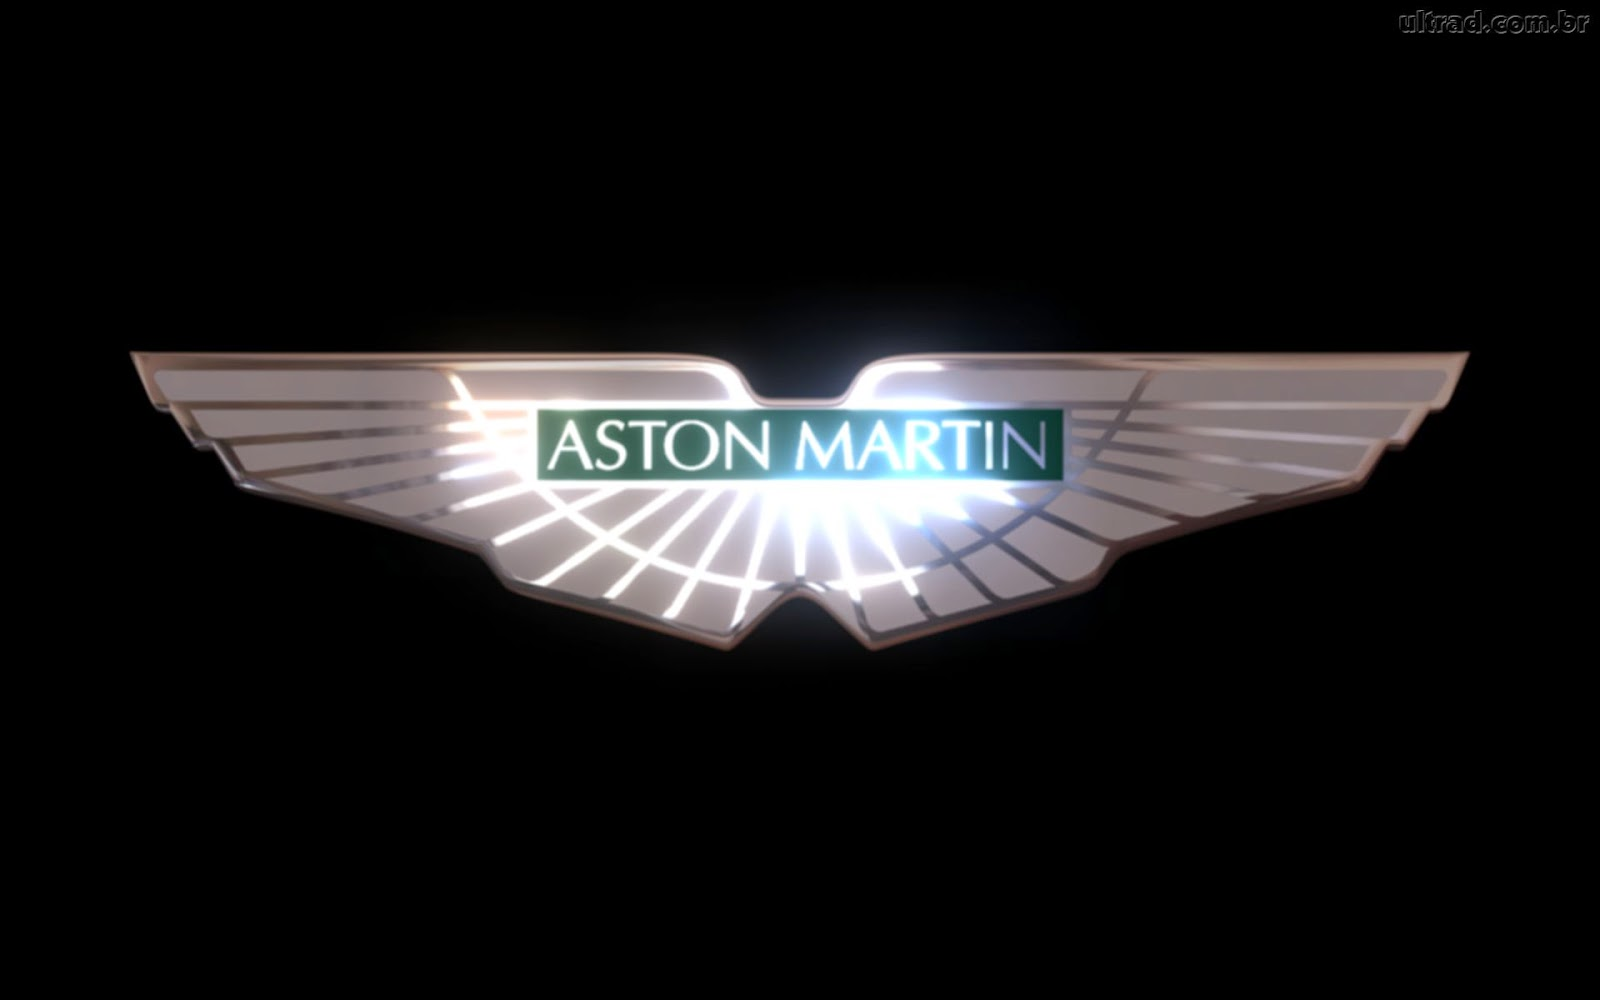 car wallpapers aston martin logo wallpaper